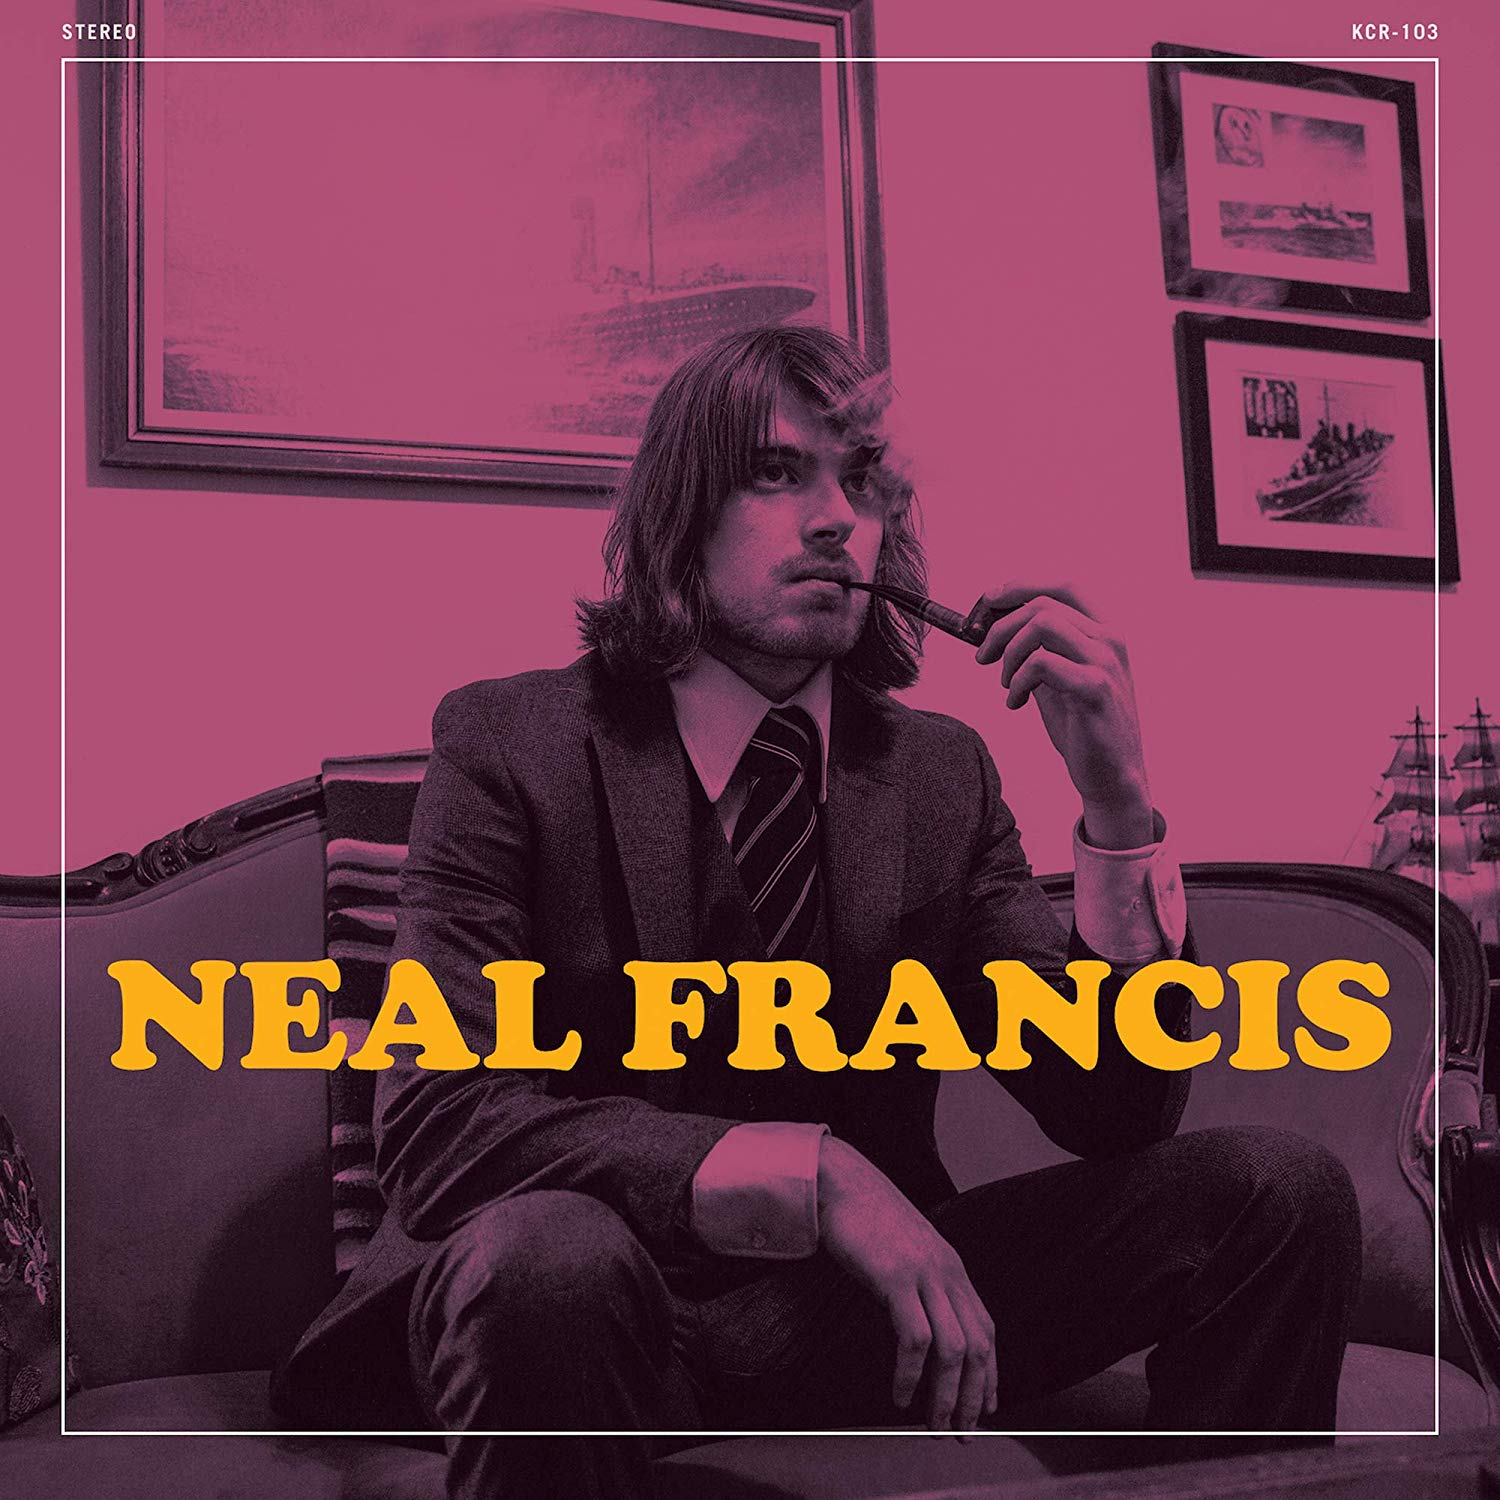 Neal Francis - These Are The Days [Blue 7in Vinyl Single]